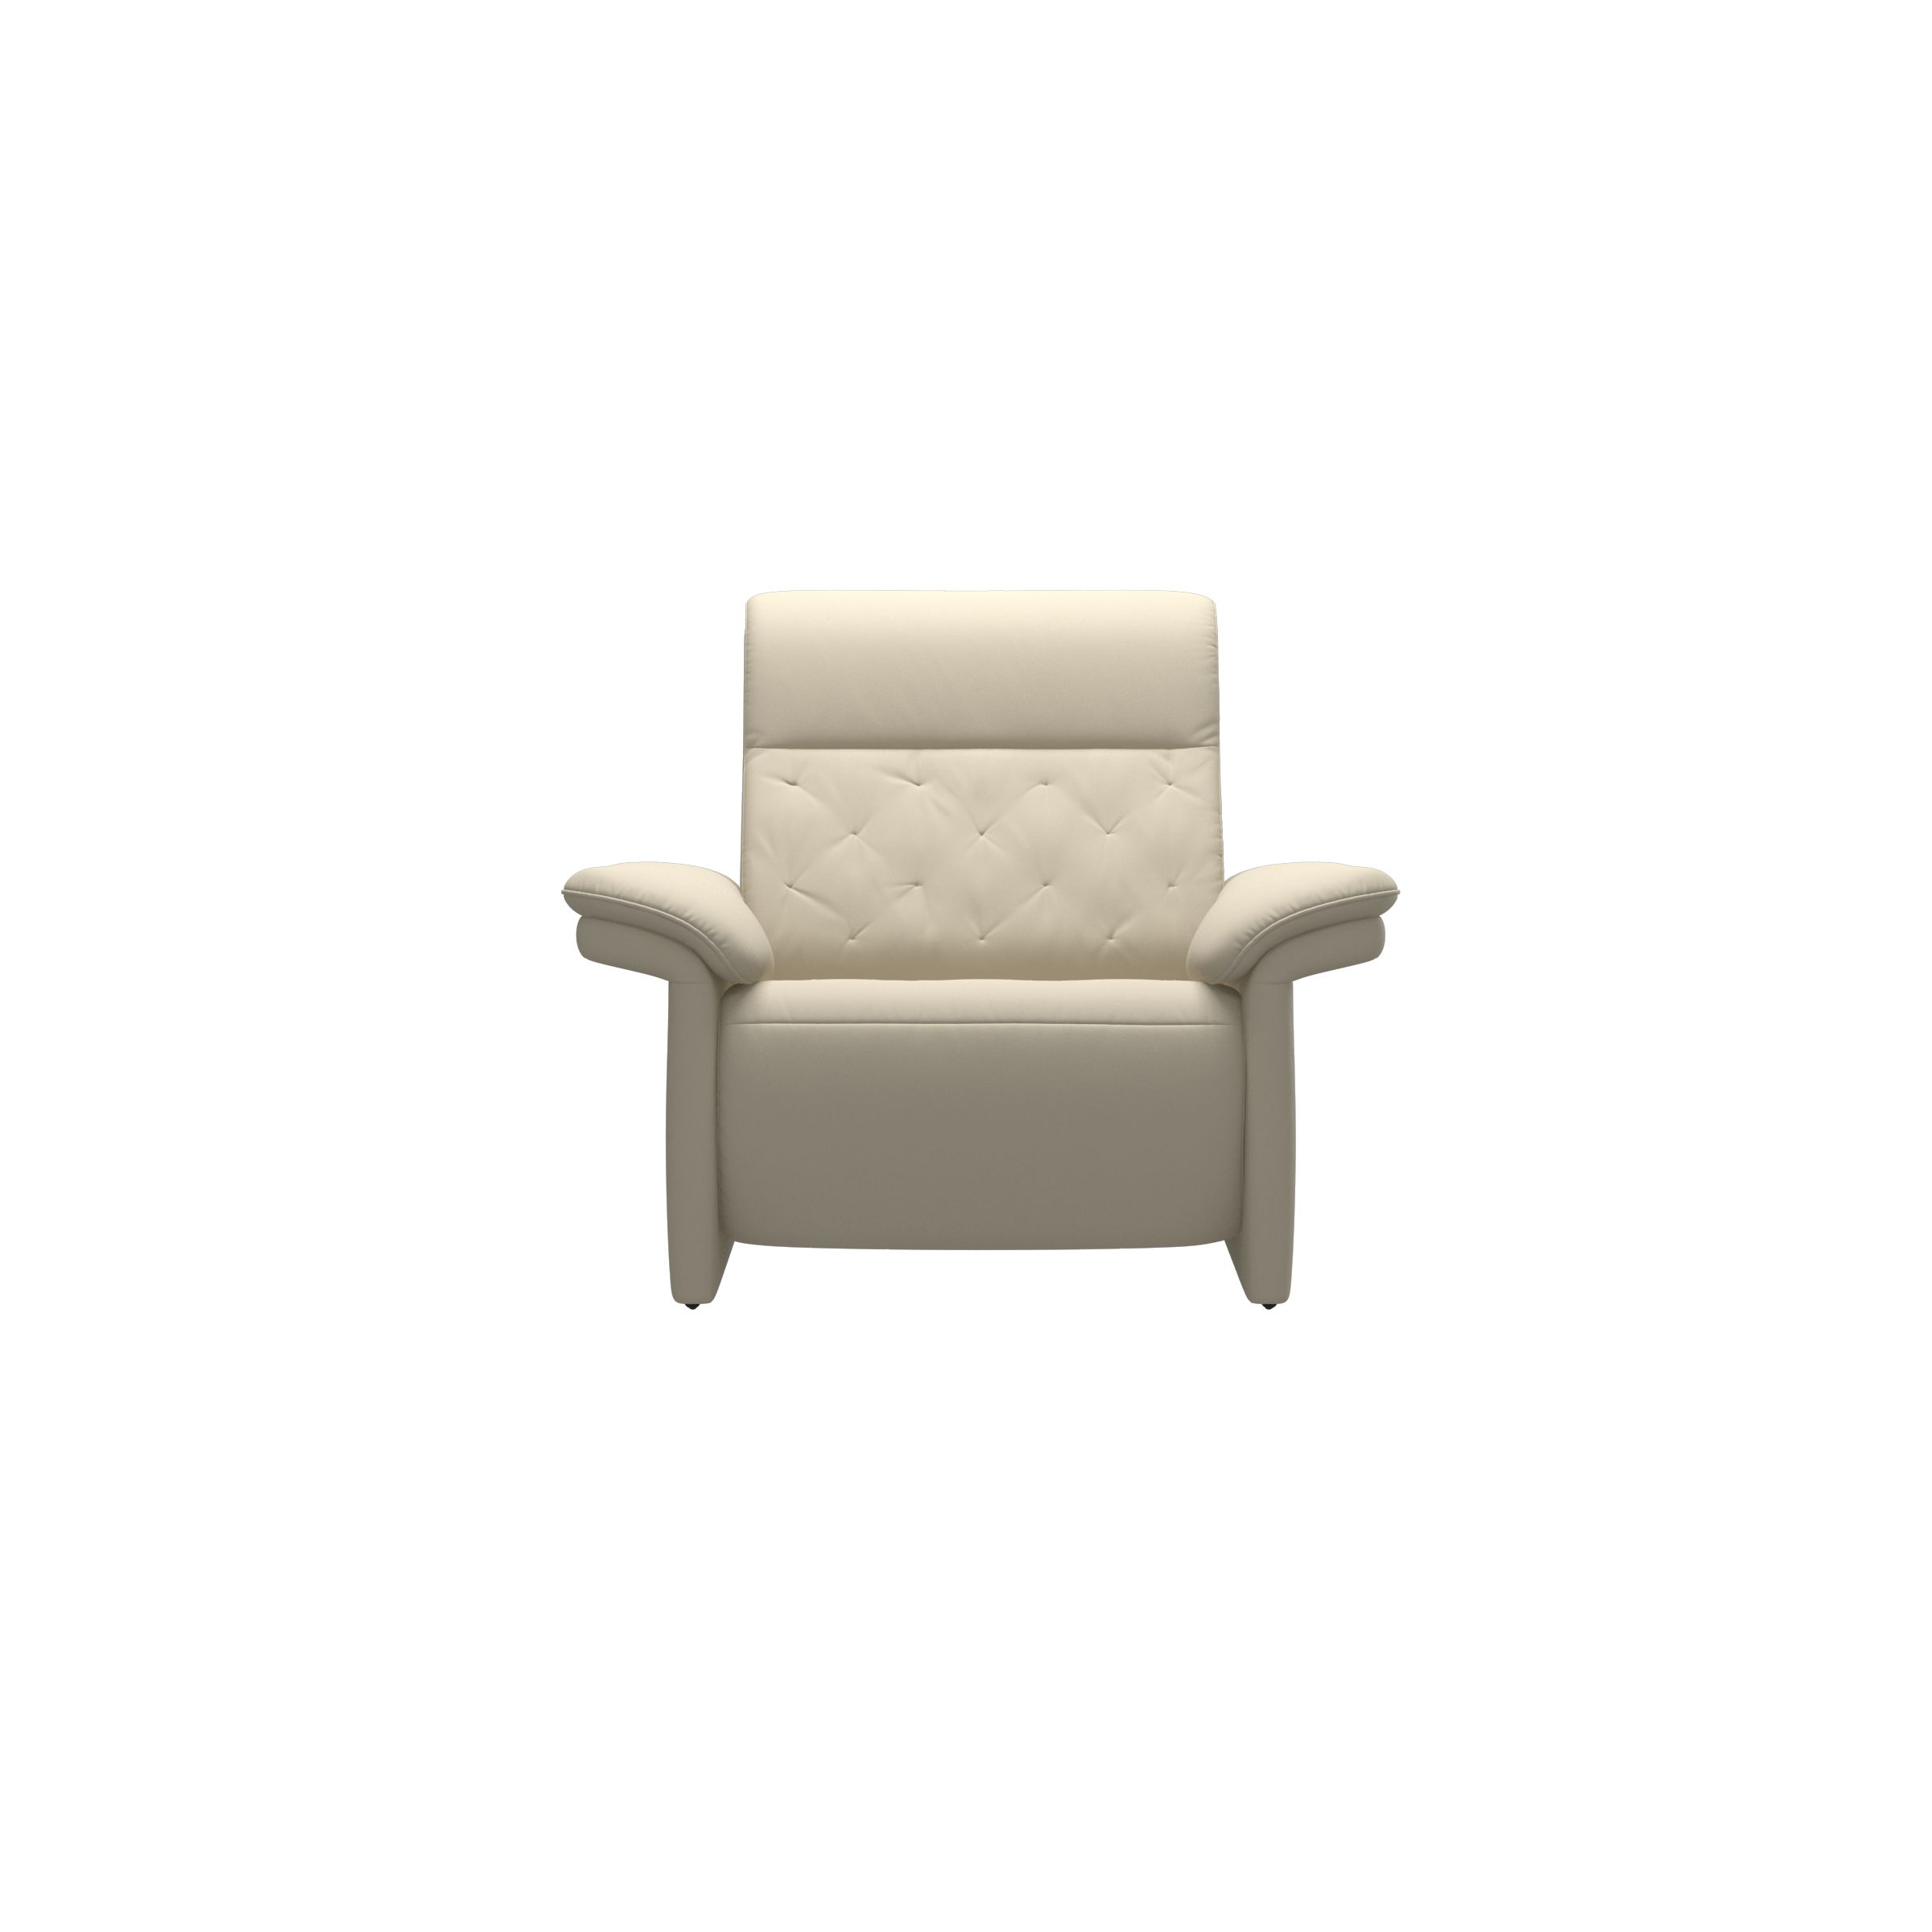 Stressless Lucy Sessel